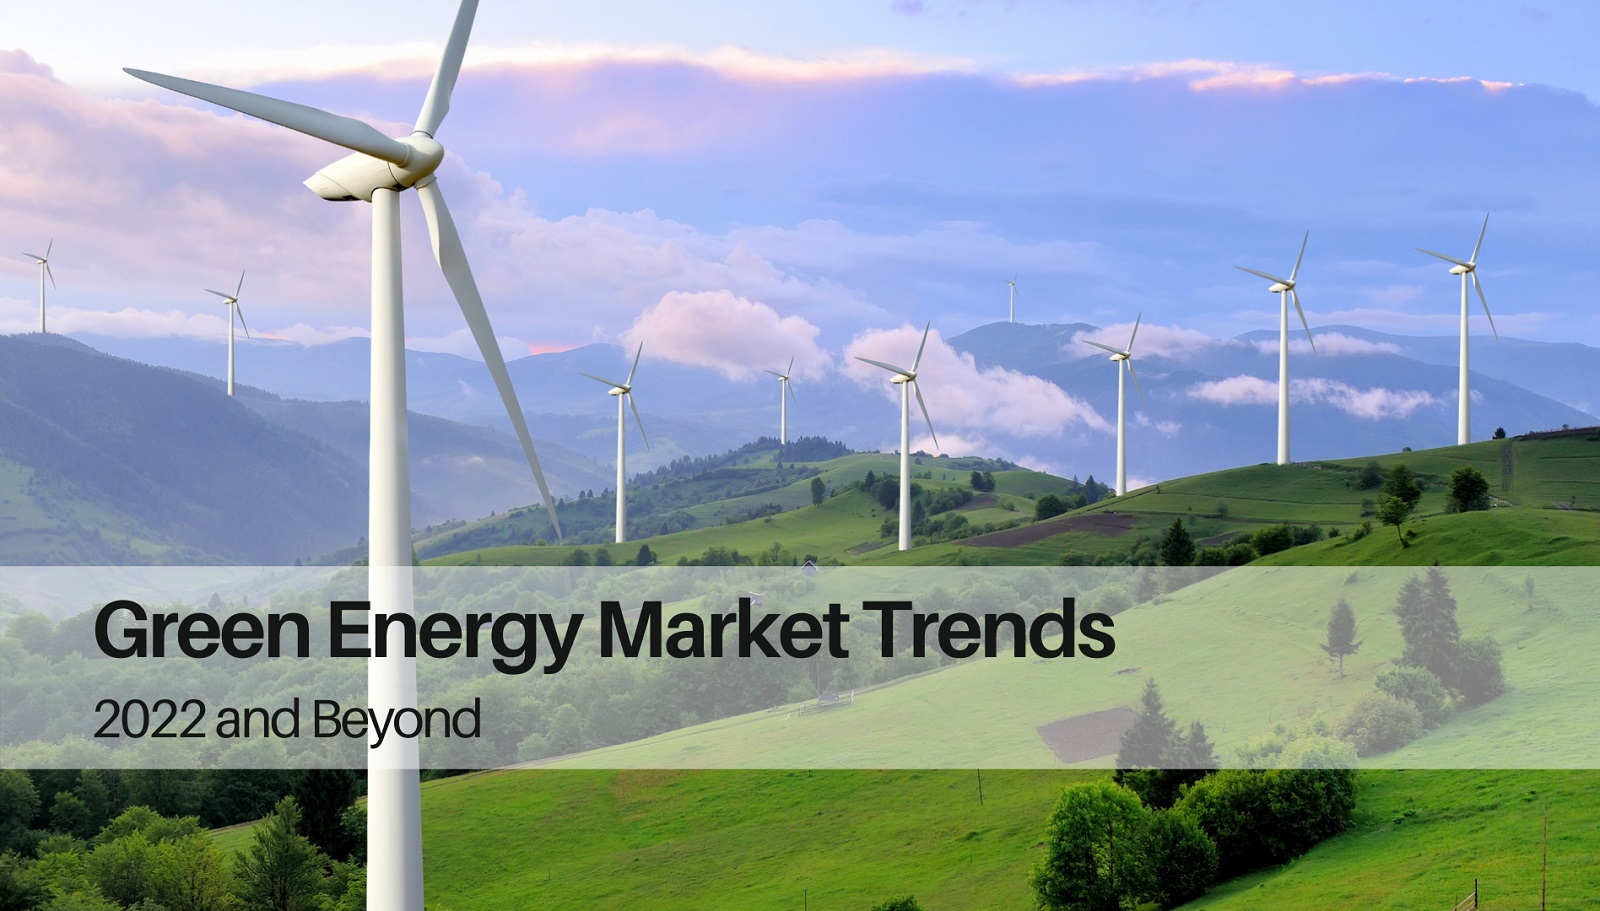 Renewable Energy Market Trends: 2022 and Beyond